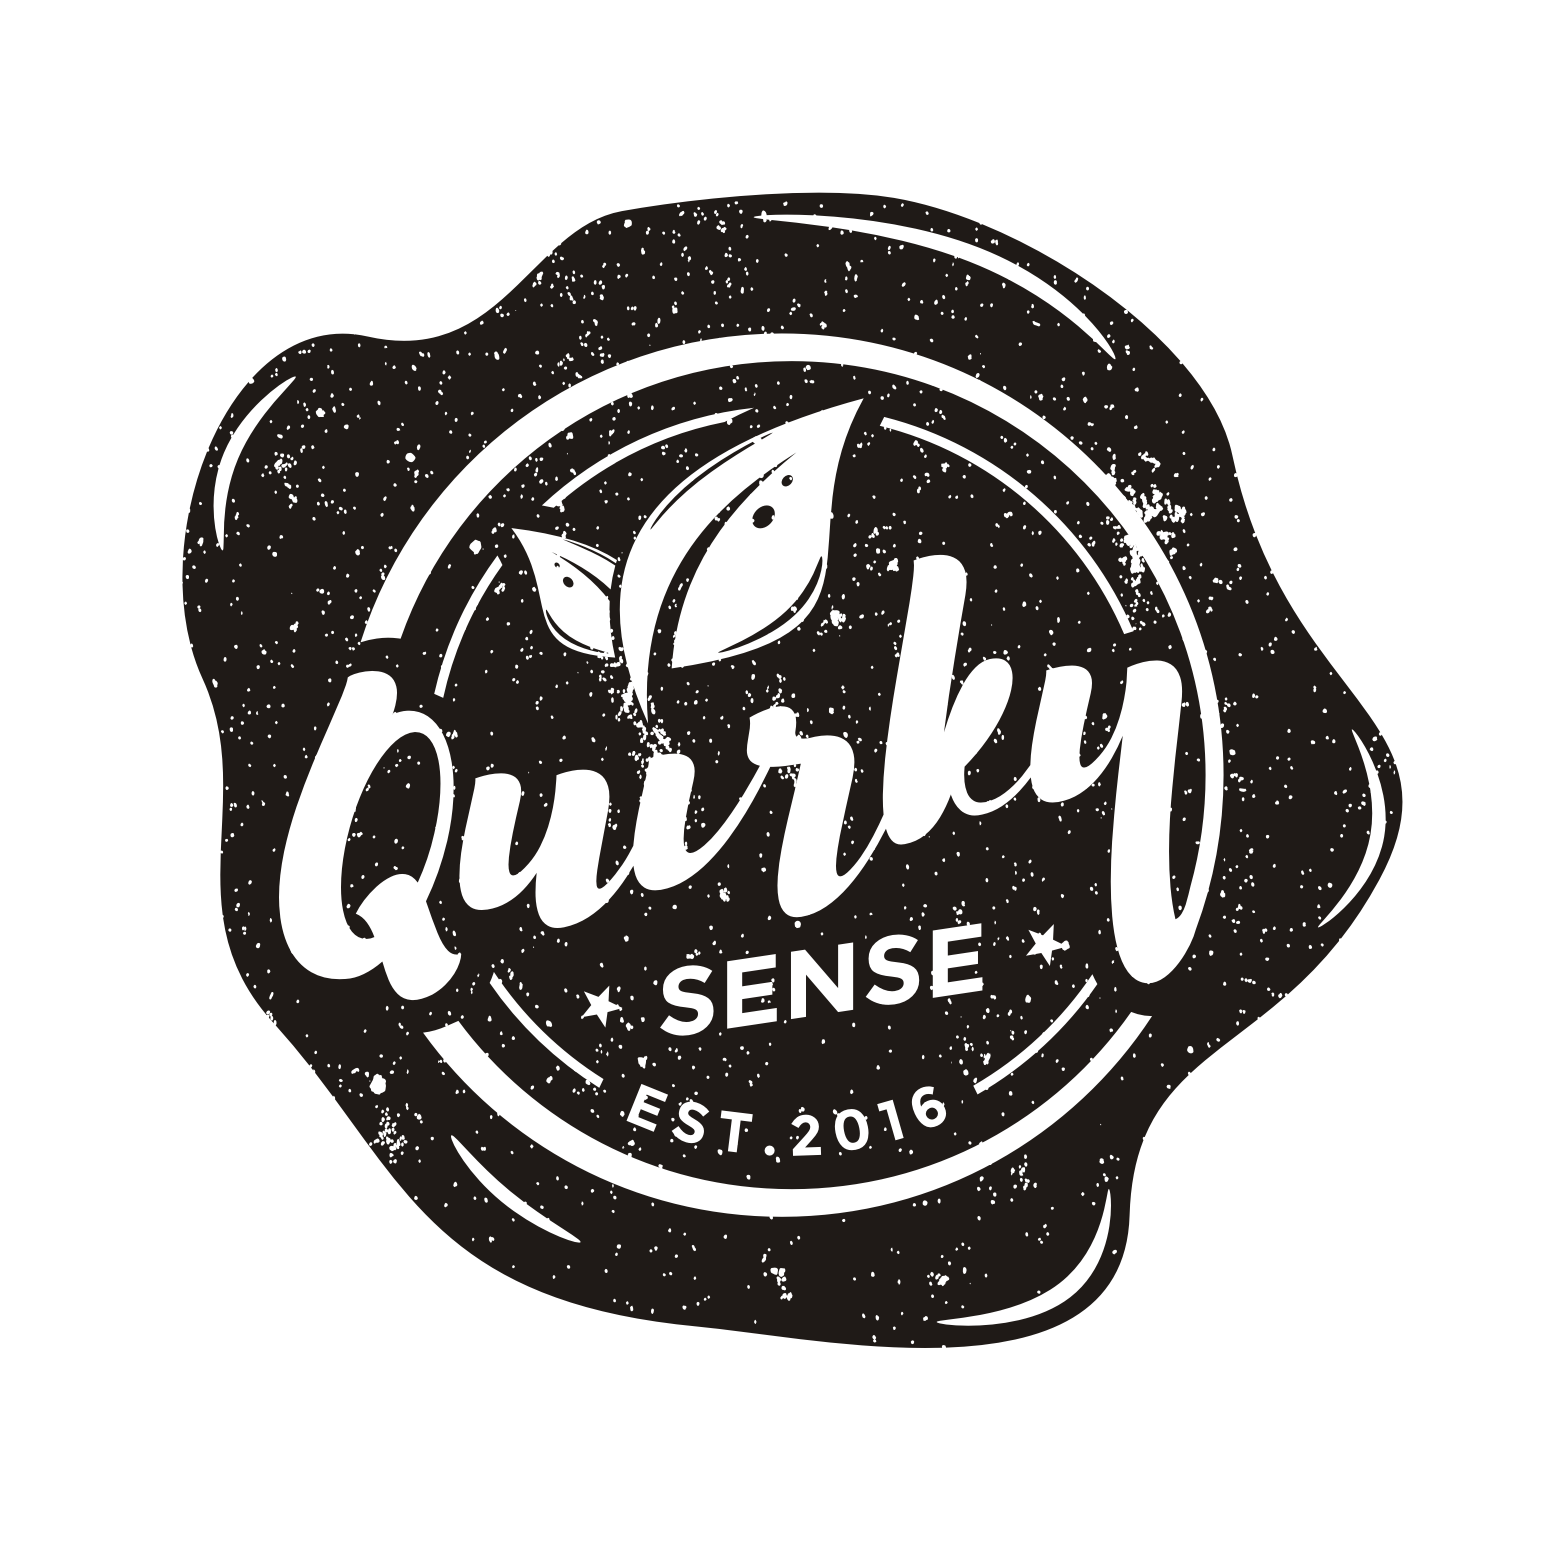 Logo design for an online selling company quirky/unique/vintage